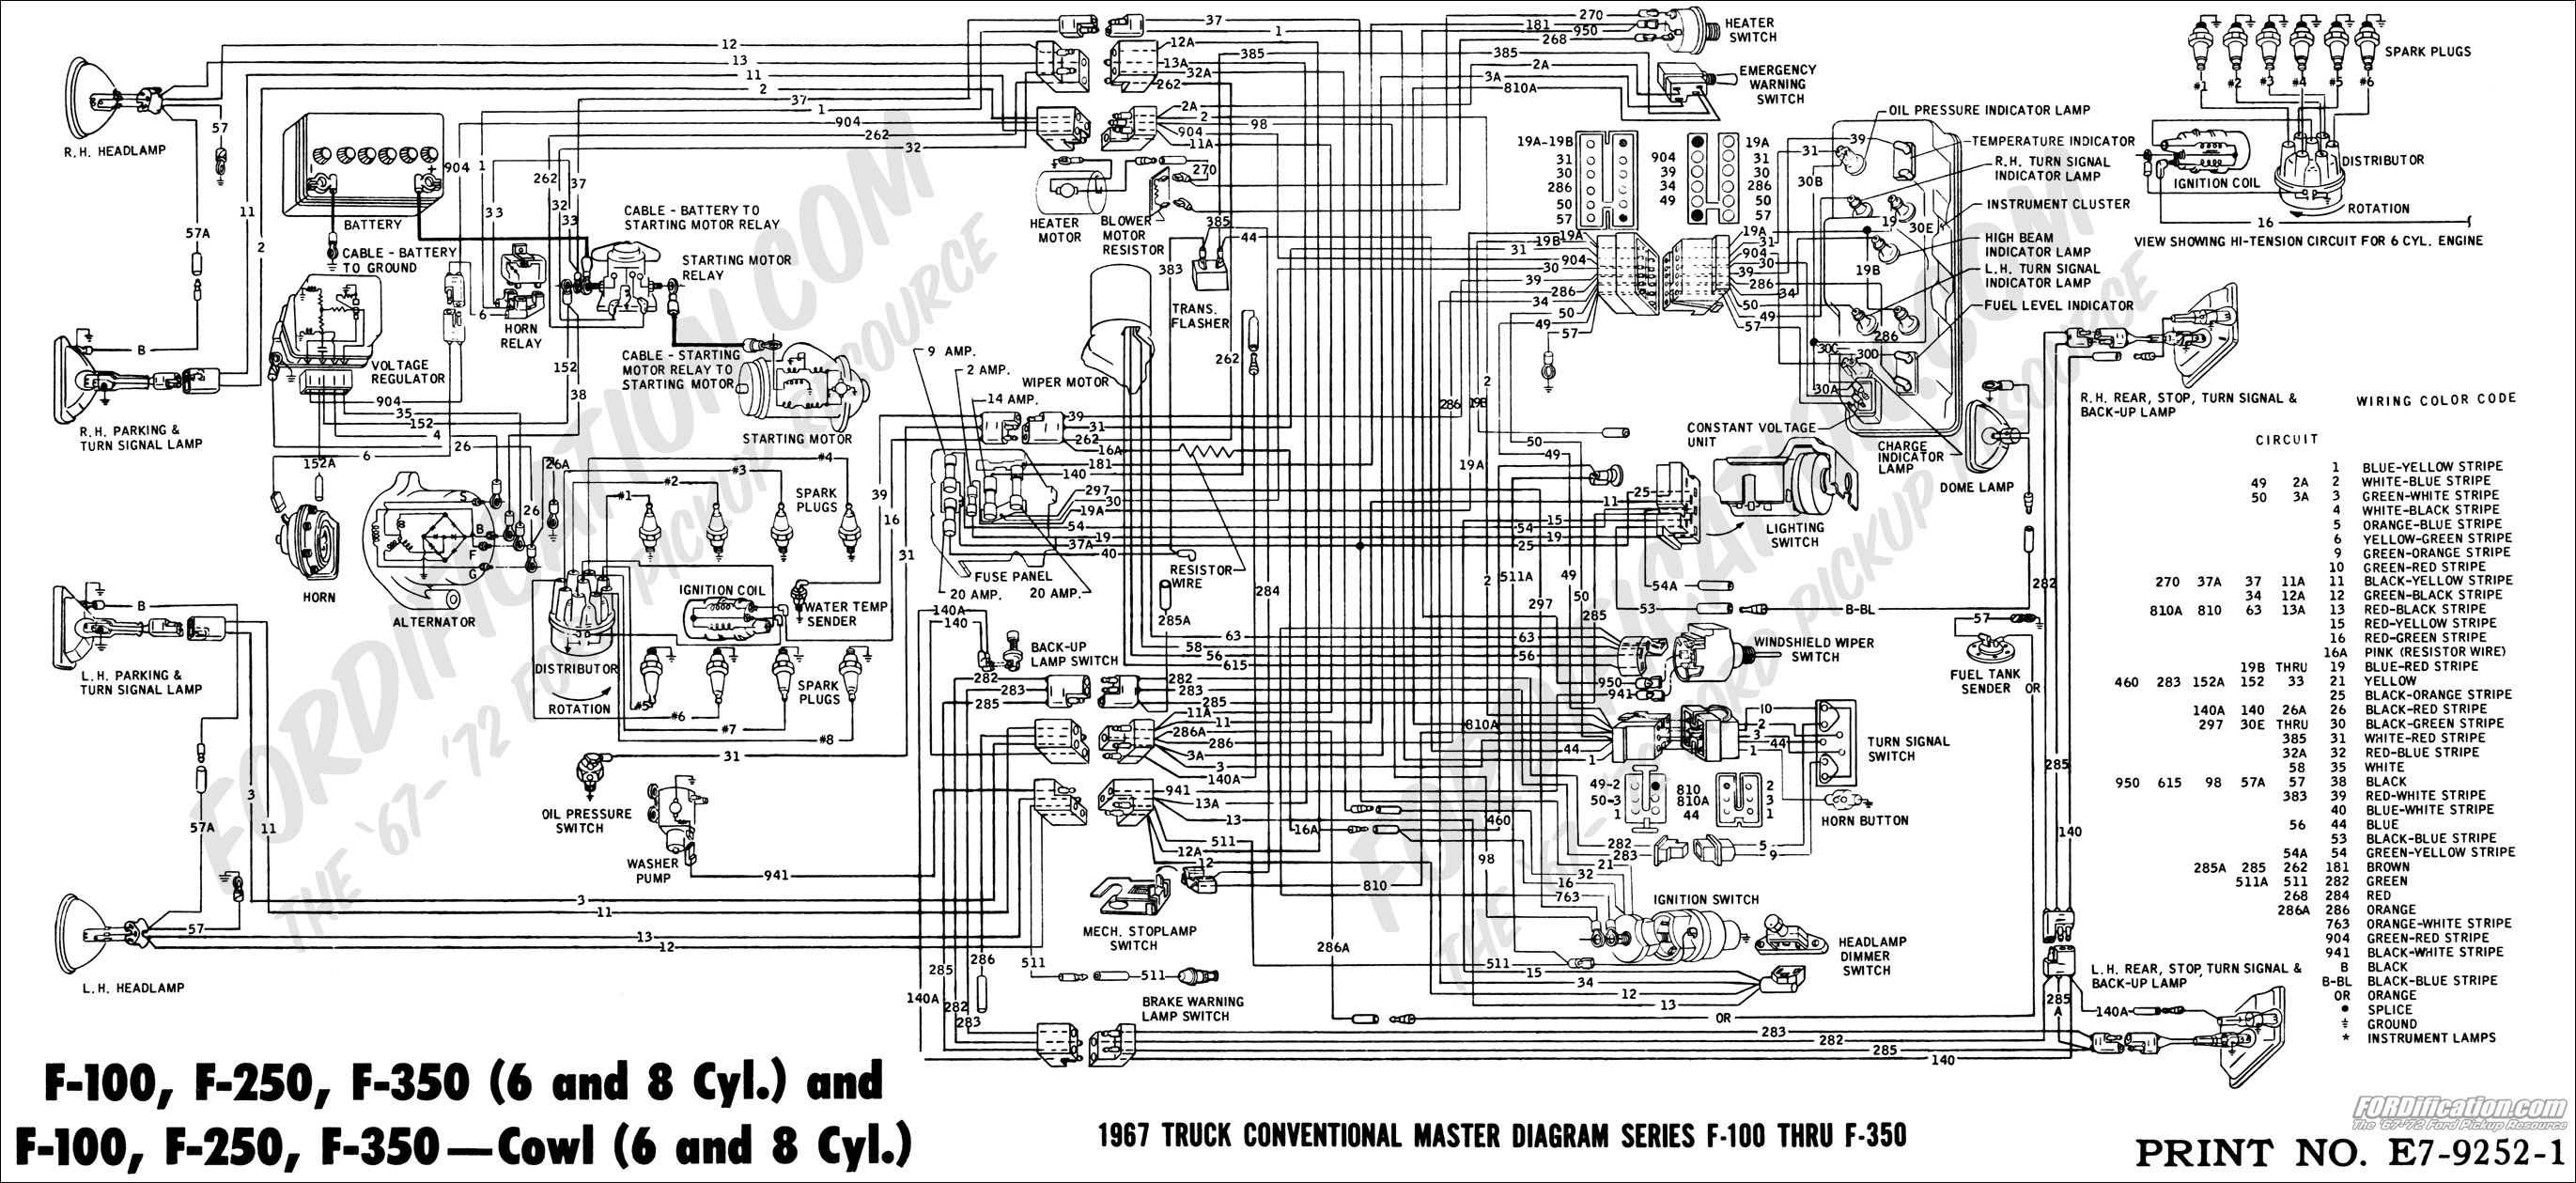 1989 f150 wiring diagram wiring diagram mega89 ford f150 wiring diagram wiring diagram experts 1989 f150 alternator wiring diagram 1989 f150 wiring diagram